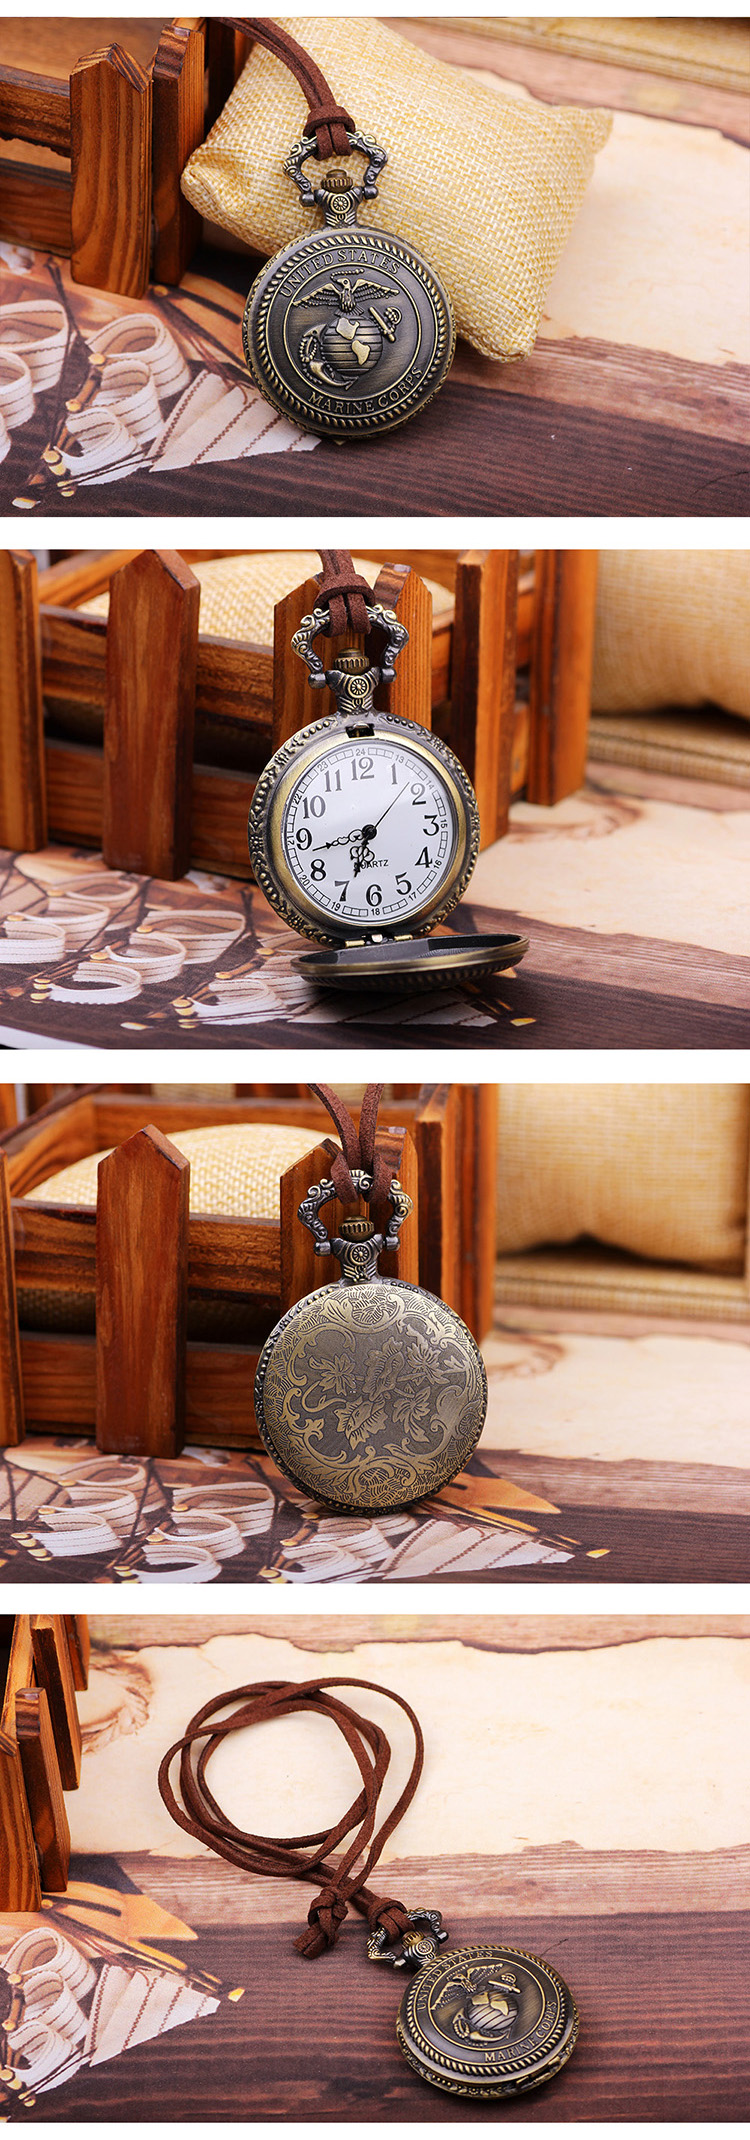 US Marine Corps Pattern Top Watch Souvenir Necklace Pocket Watch for gift items